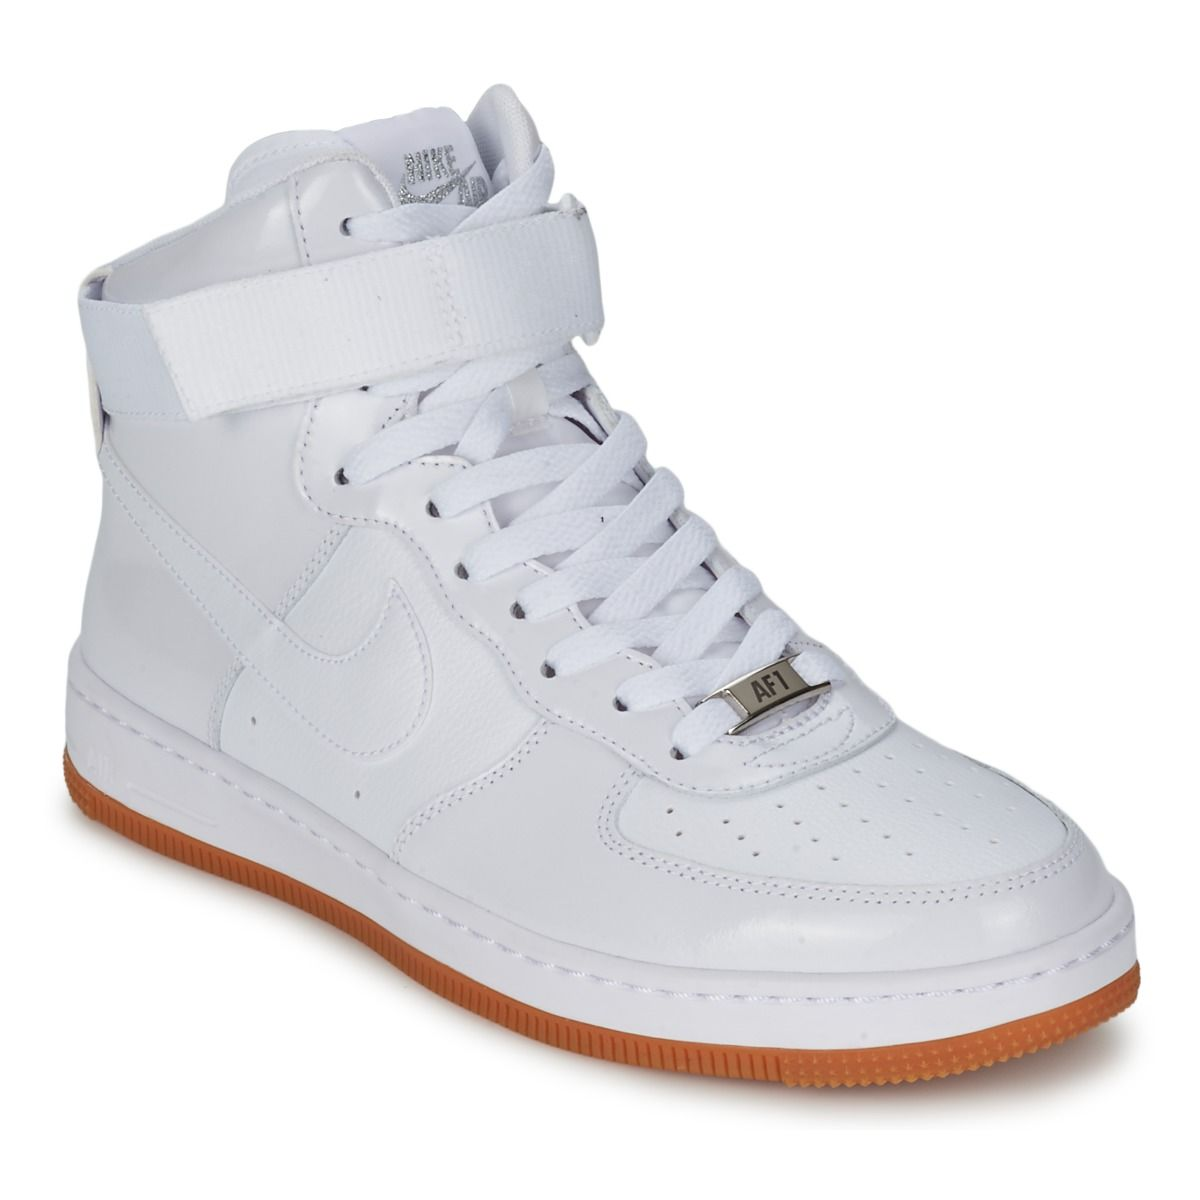 Baskets montantes Nike AIR FORCE 1 AIRNESS MID Blanc - Baskets Femme  Spartoo - Bon-Shopping.com